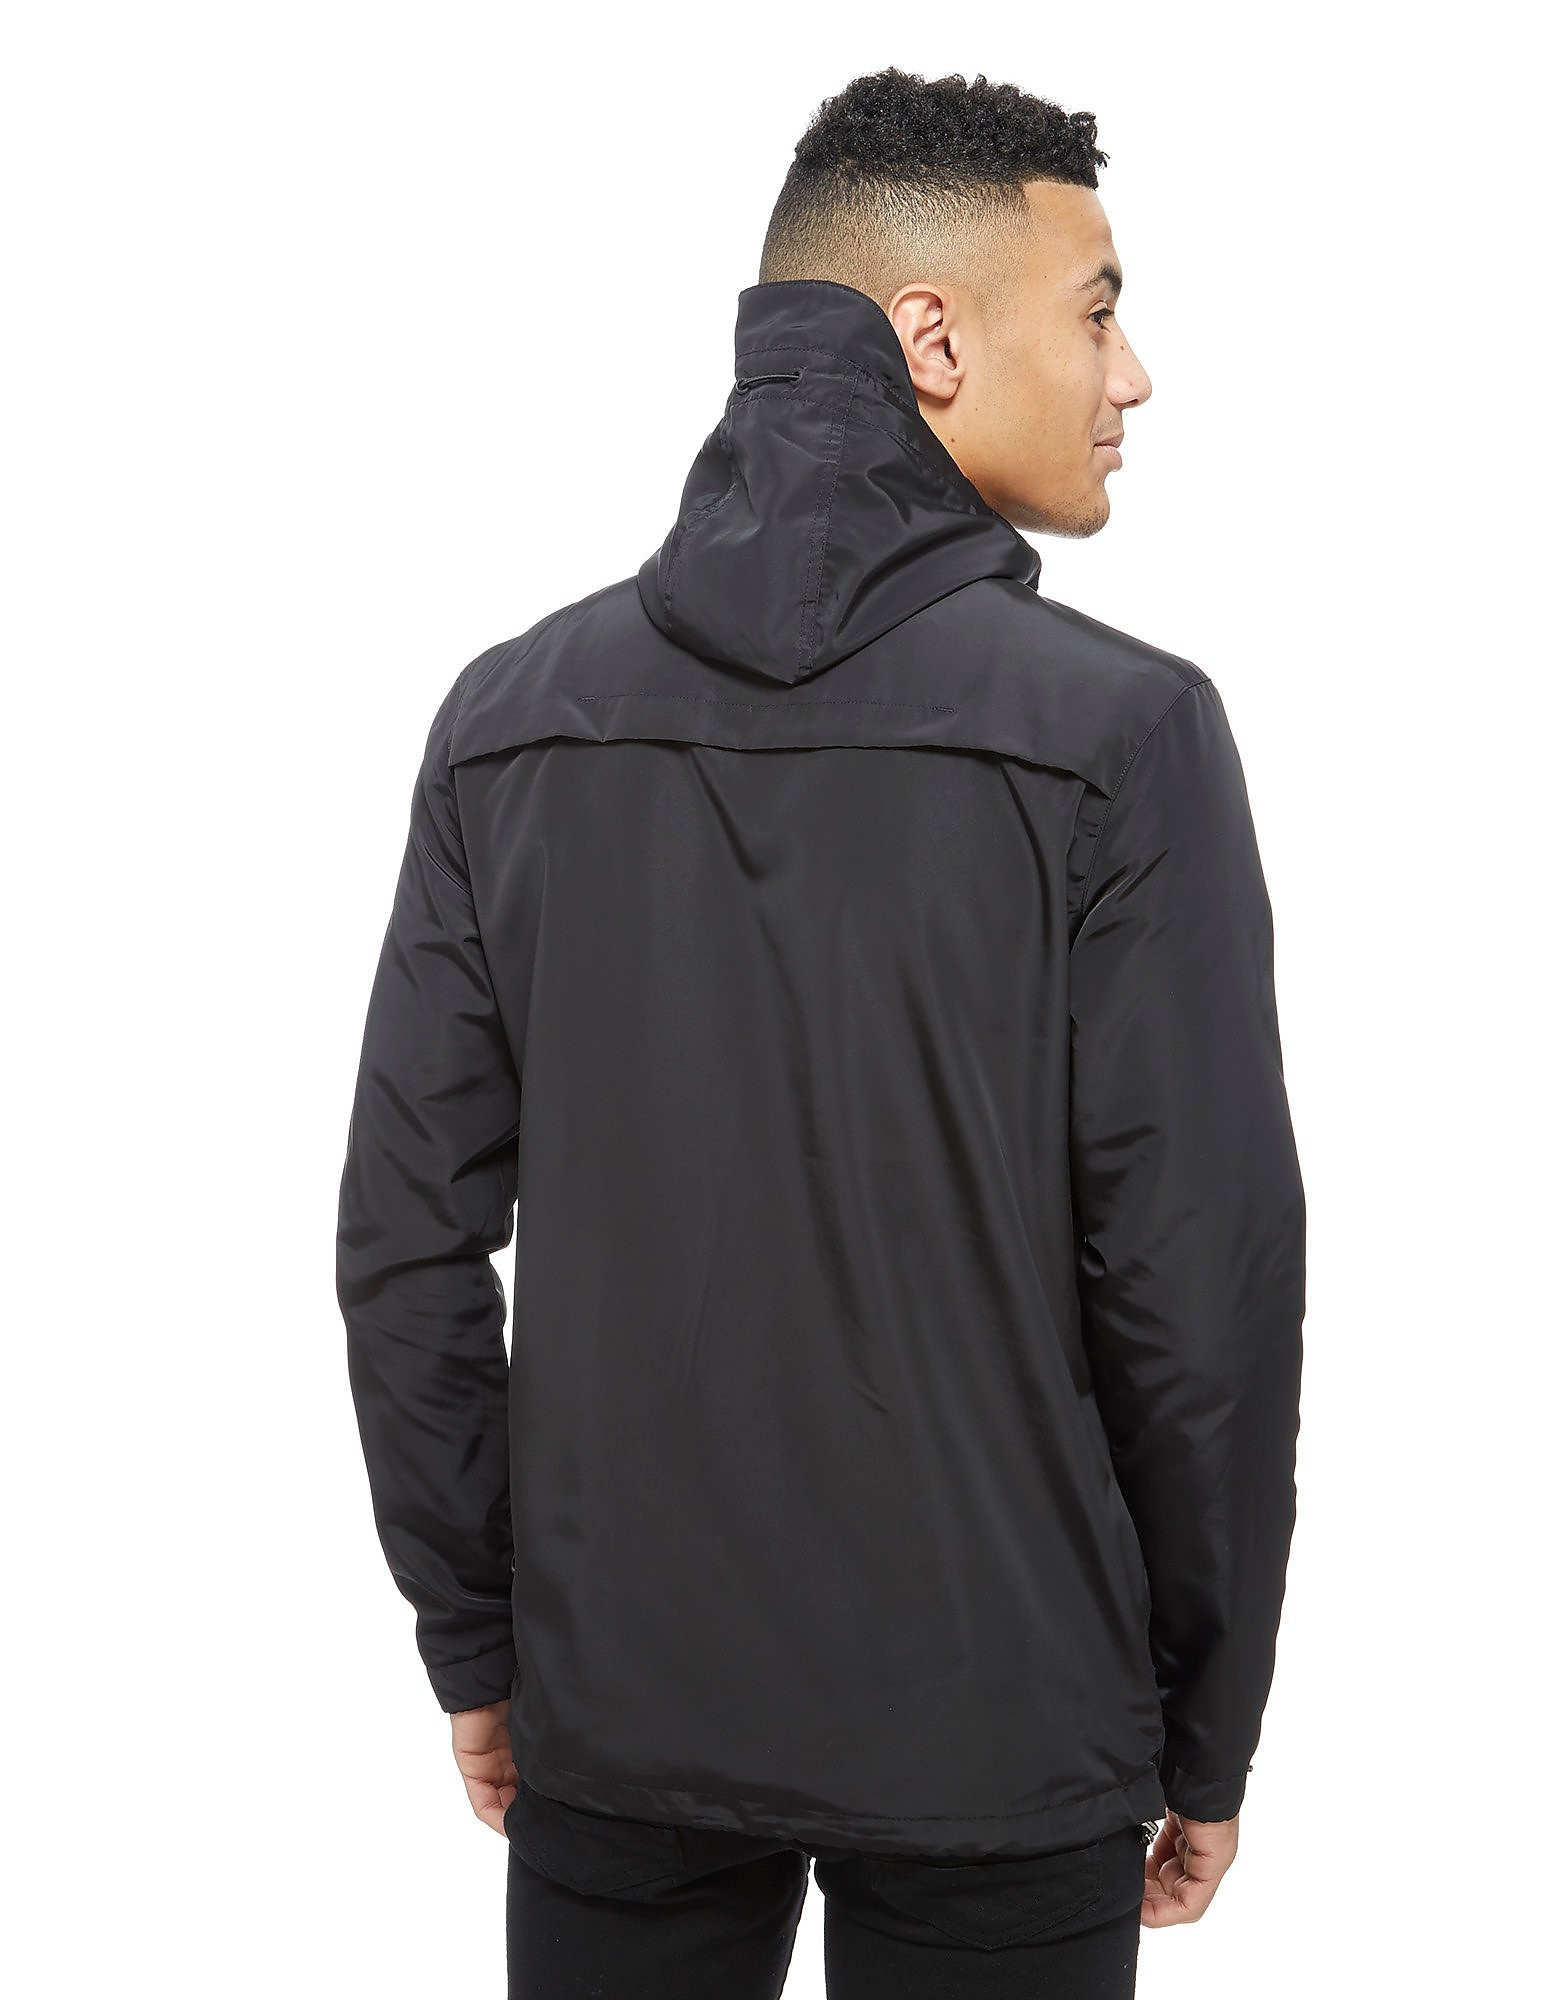 11 Degrees Hurricane Windbreaker Jacket